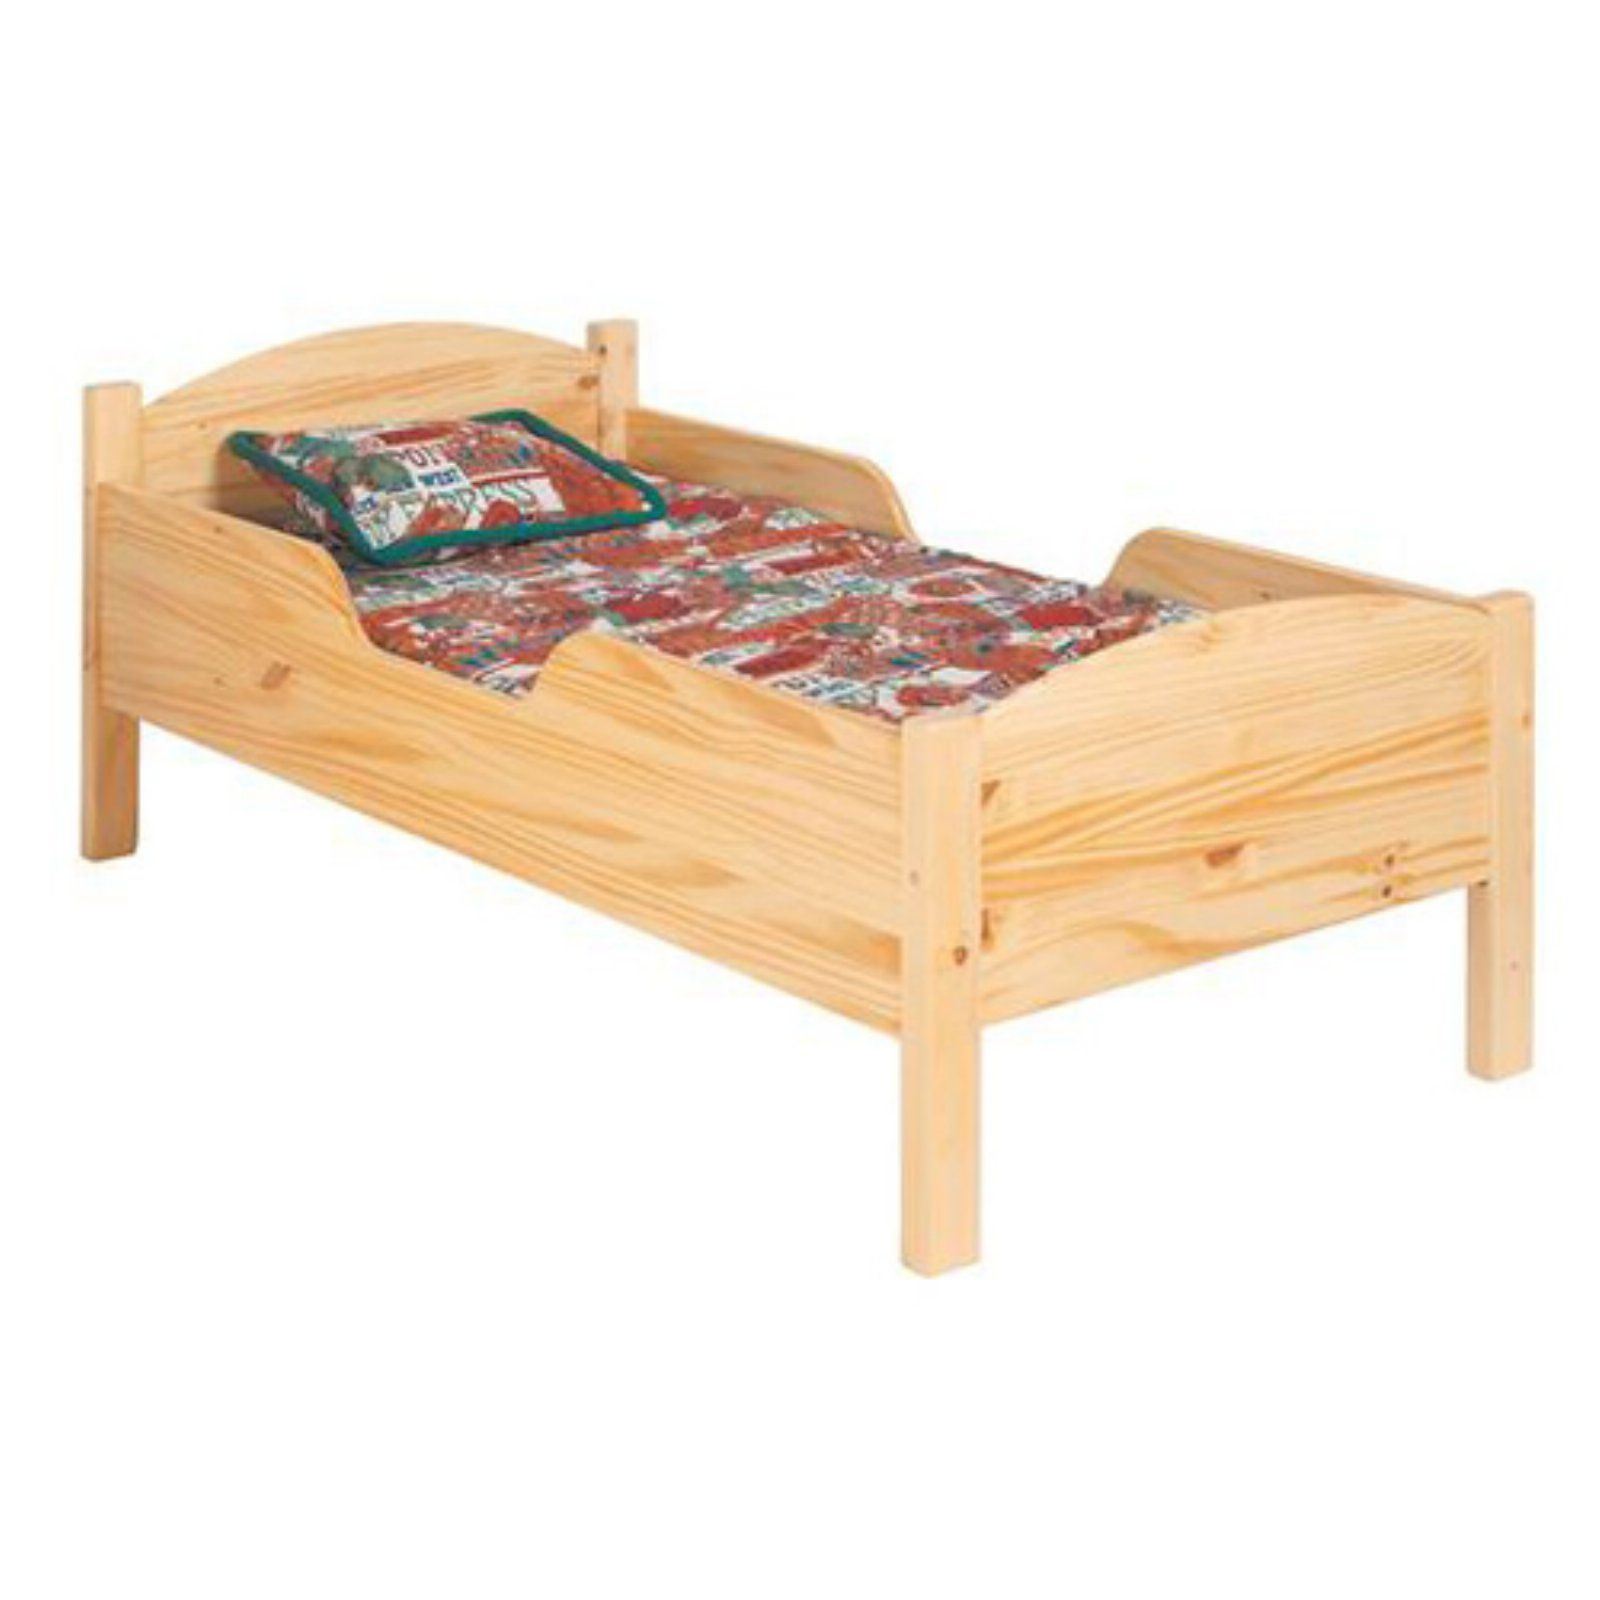 98s8bnawvdohrm Cheap toddler bed with mattress included